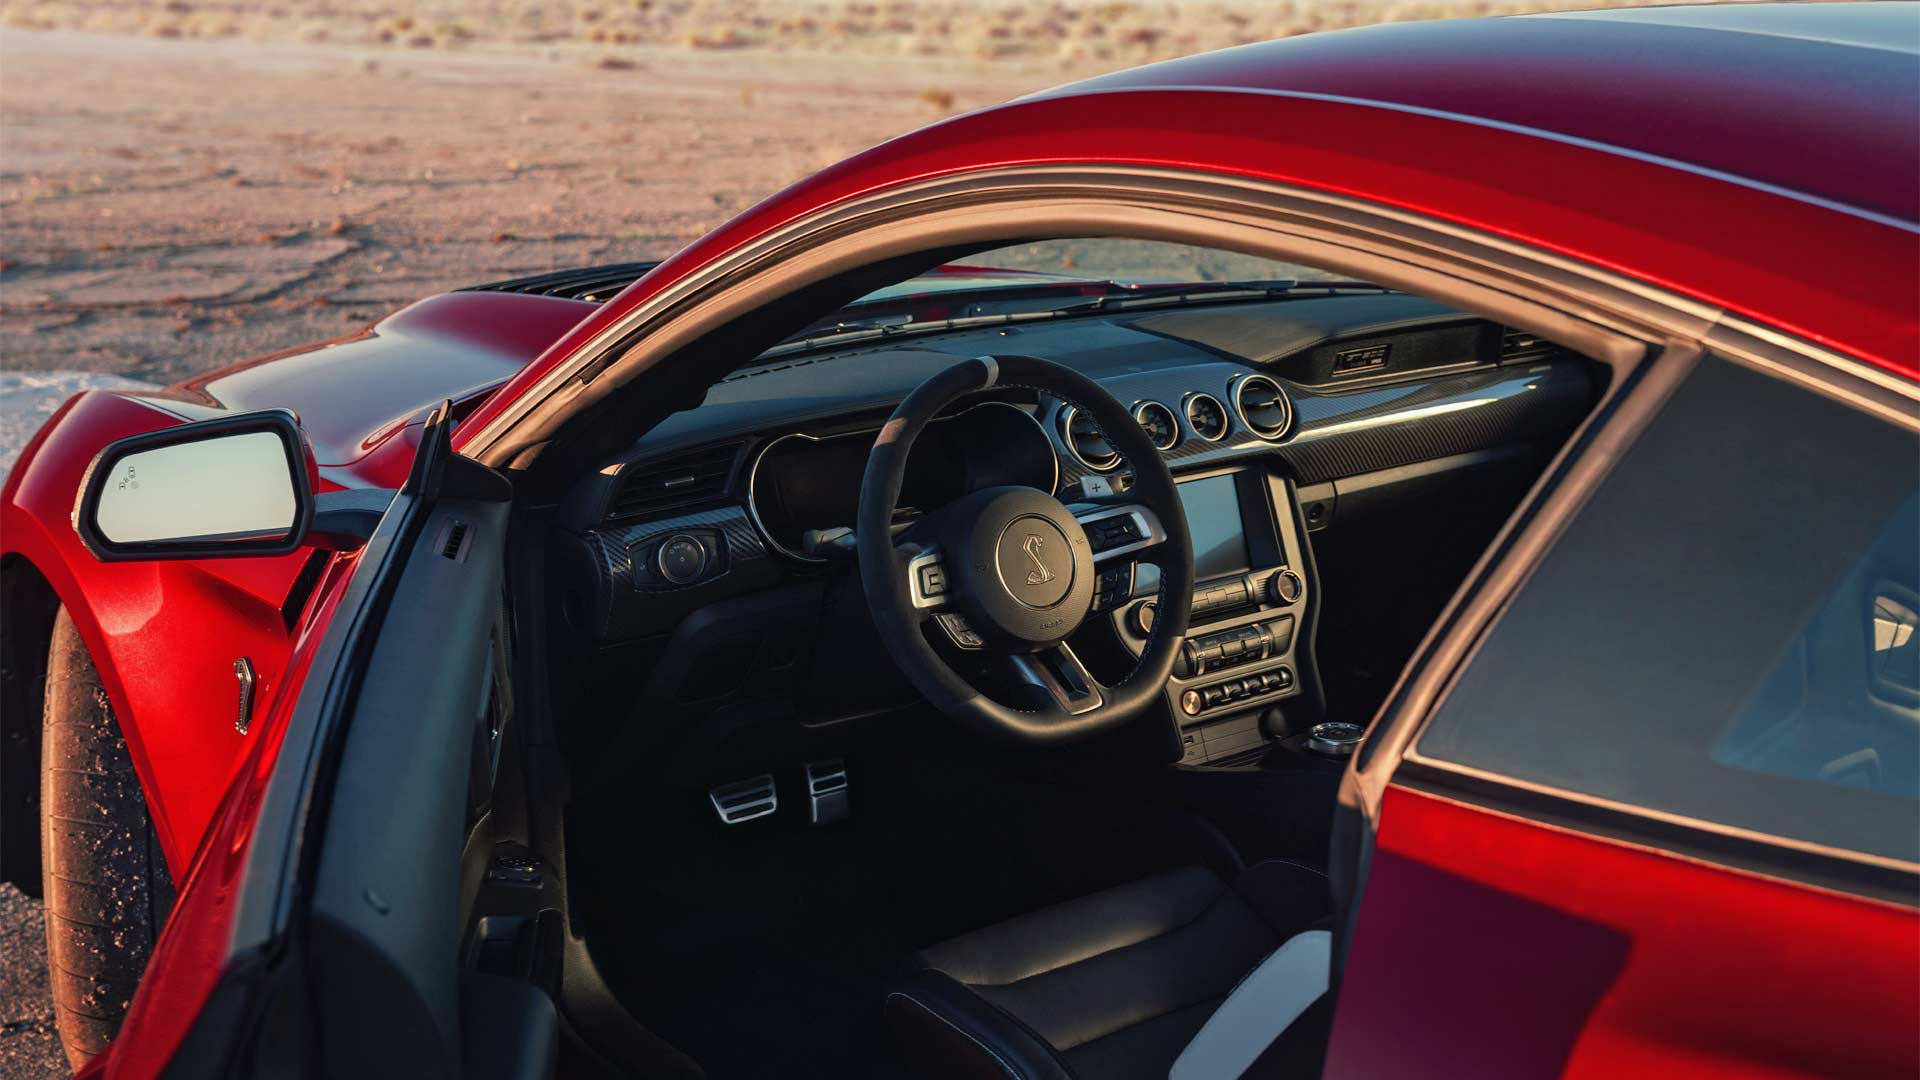 2020 Shelby GT500 is the most powerful street-legal Ford ever - Autodevot